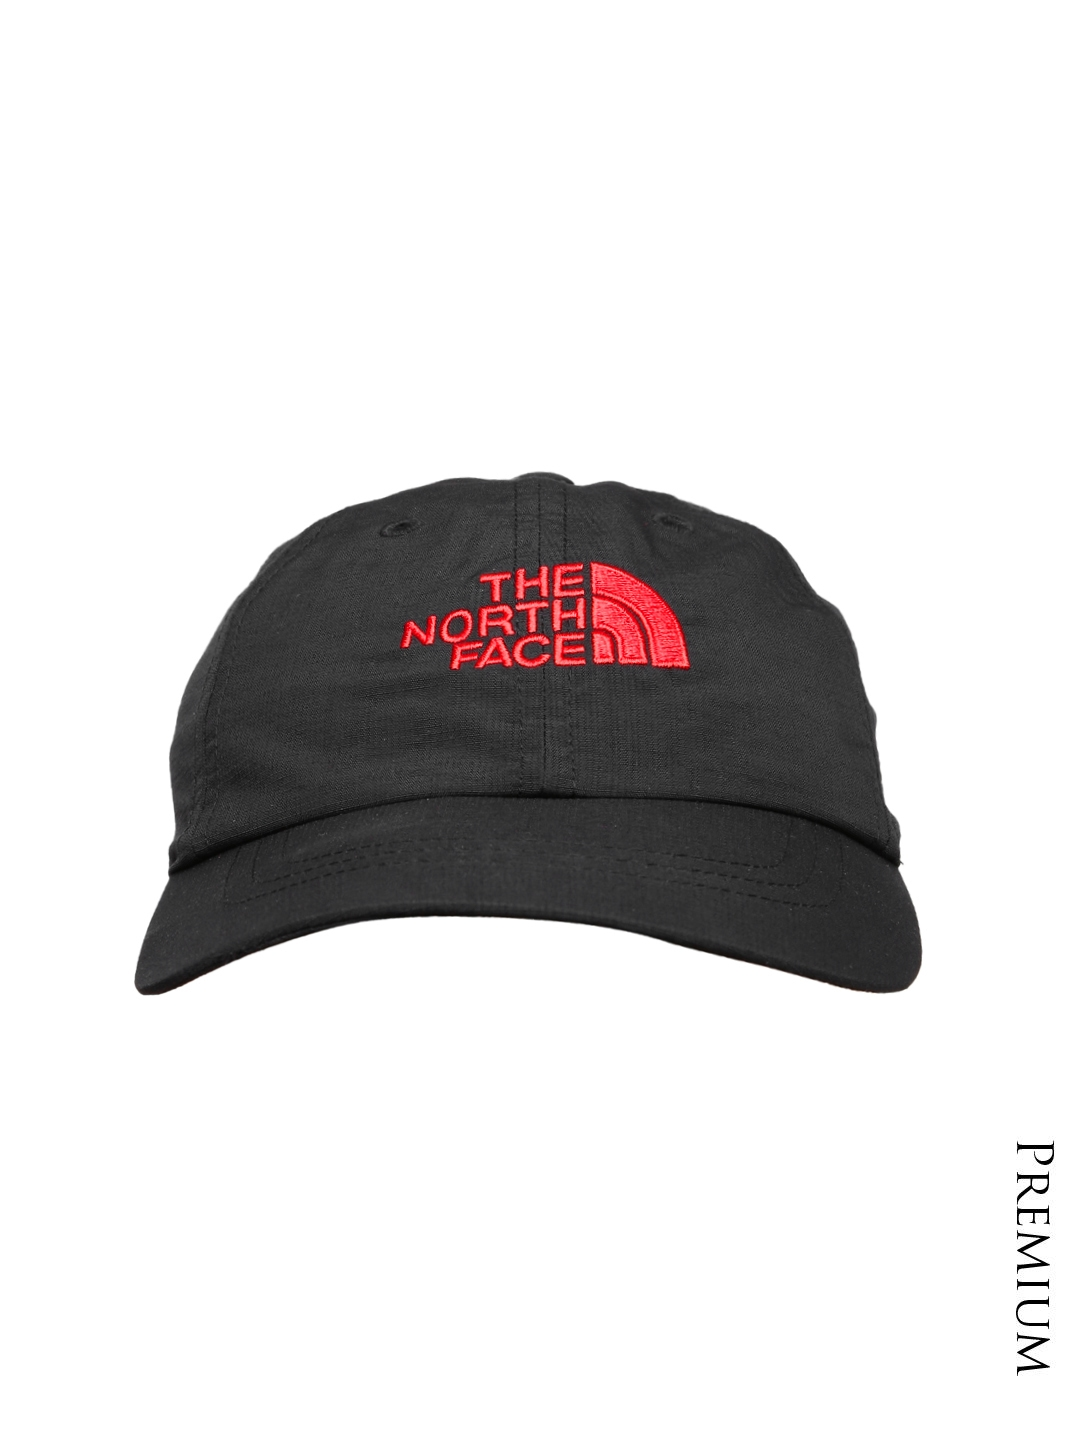 0fd81af4a54 Buy The North Face Boys Black Youth Horizon Cap - Caps for Boys 1330283